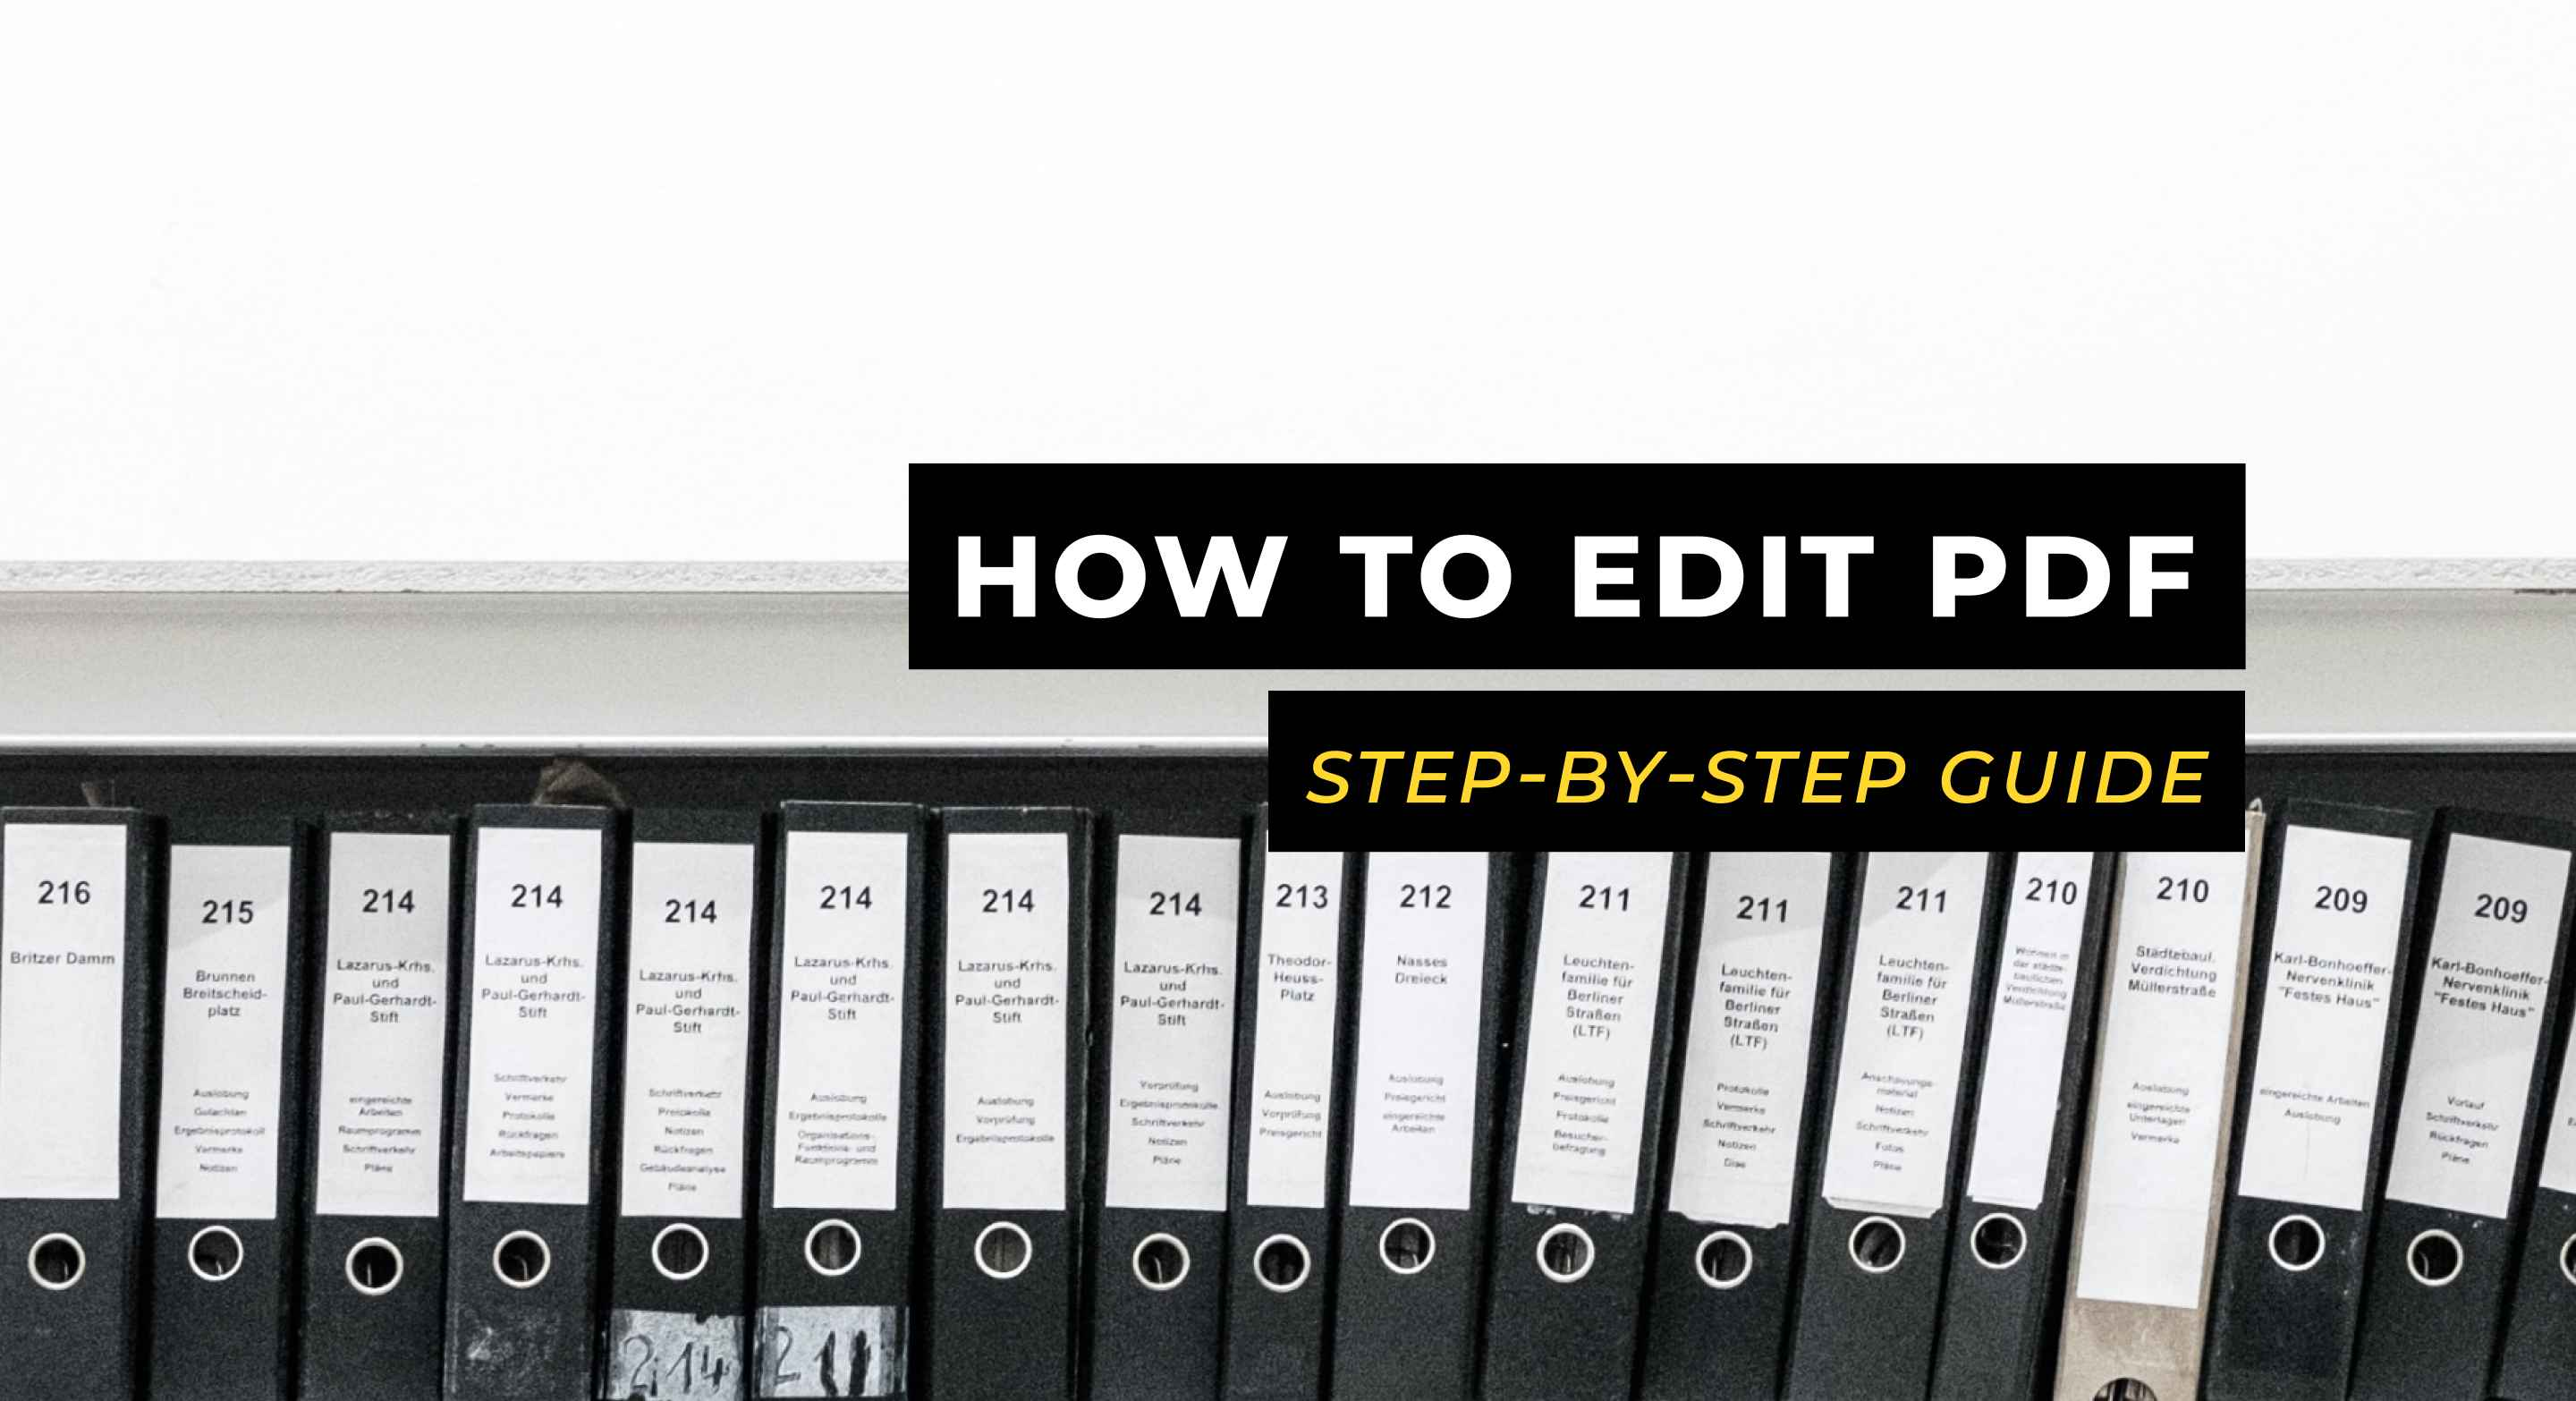 How to Edit PDF – The Only Step-By-Step Guide You'll Need in 2020